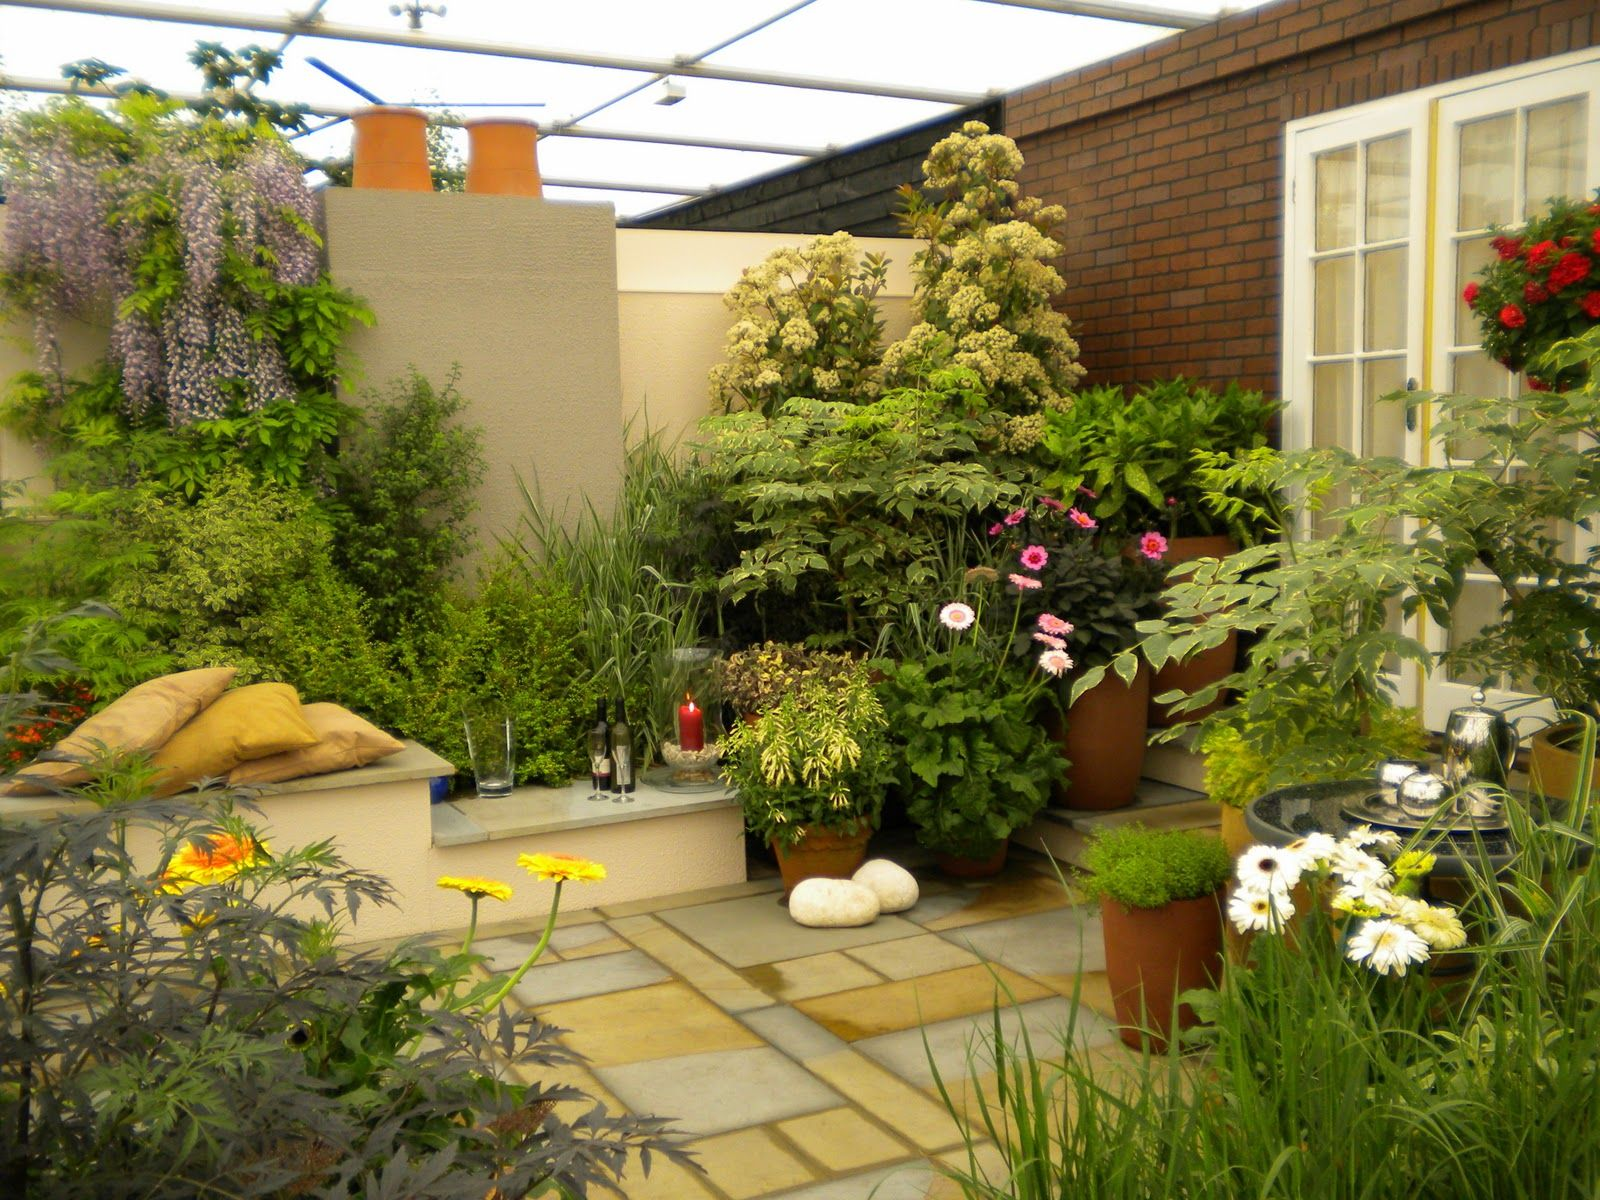 Decorating The Roof To Look Like A Paradise Rooftop gardens